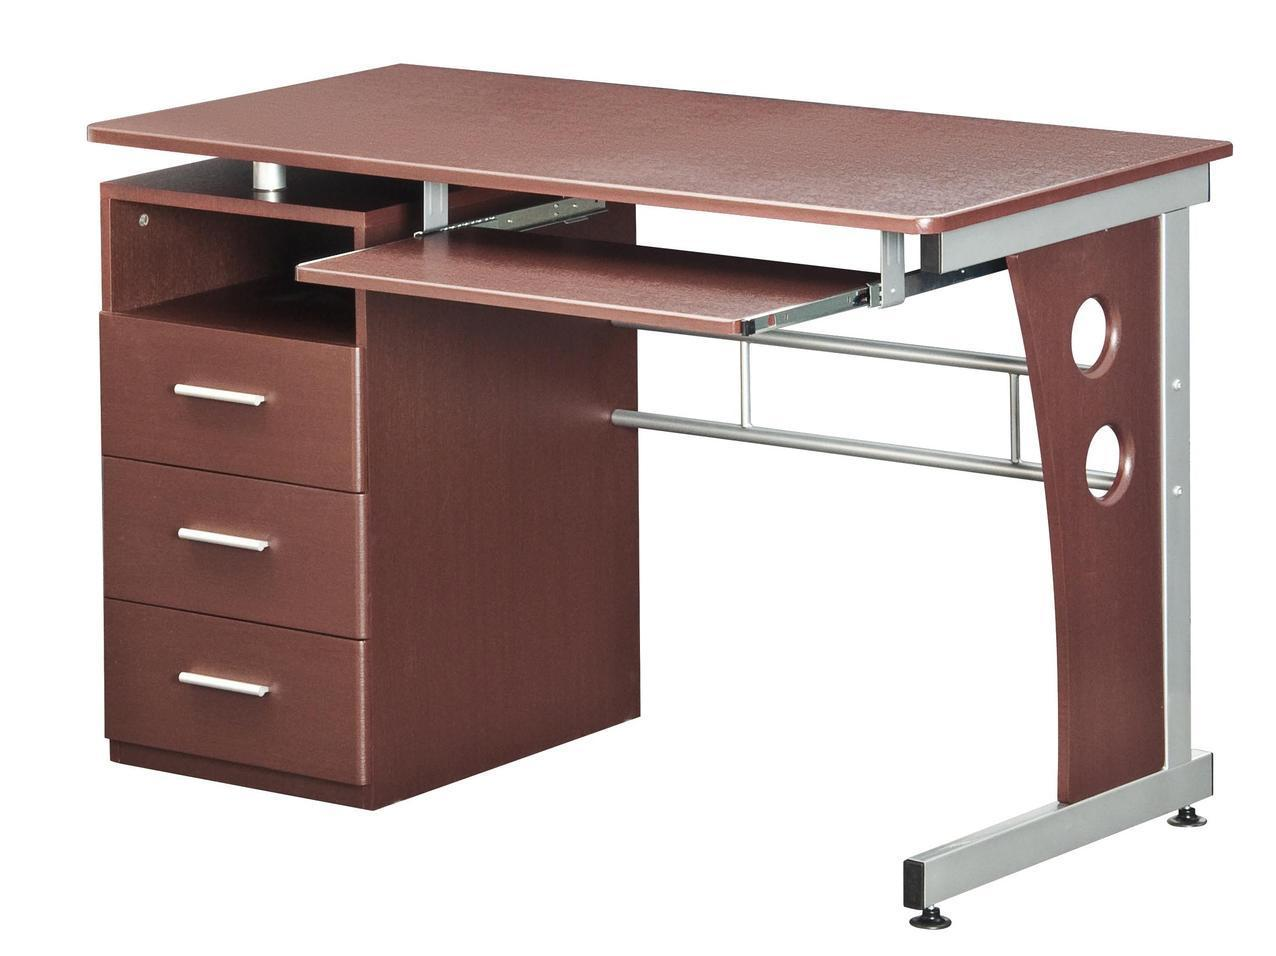 #87 - Modern Computer Desk with 3 Storage Drawers and Pullout Keyboard Tray